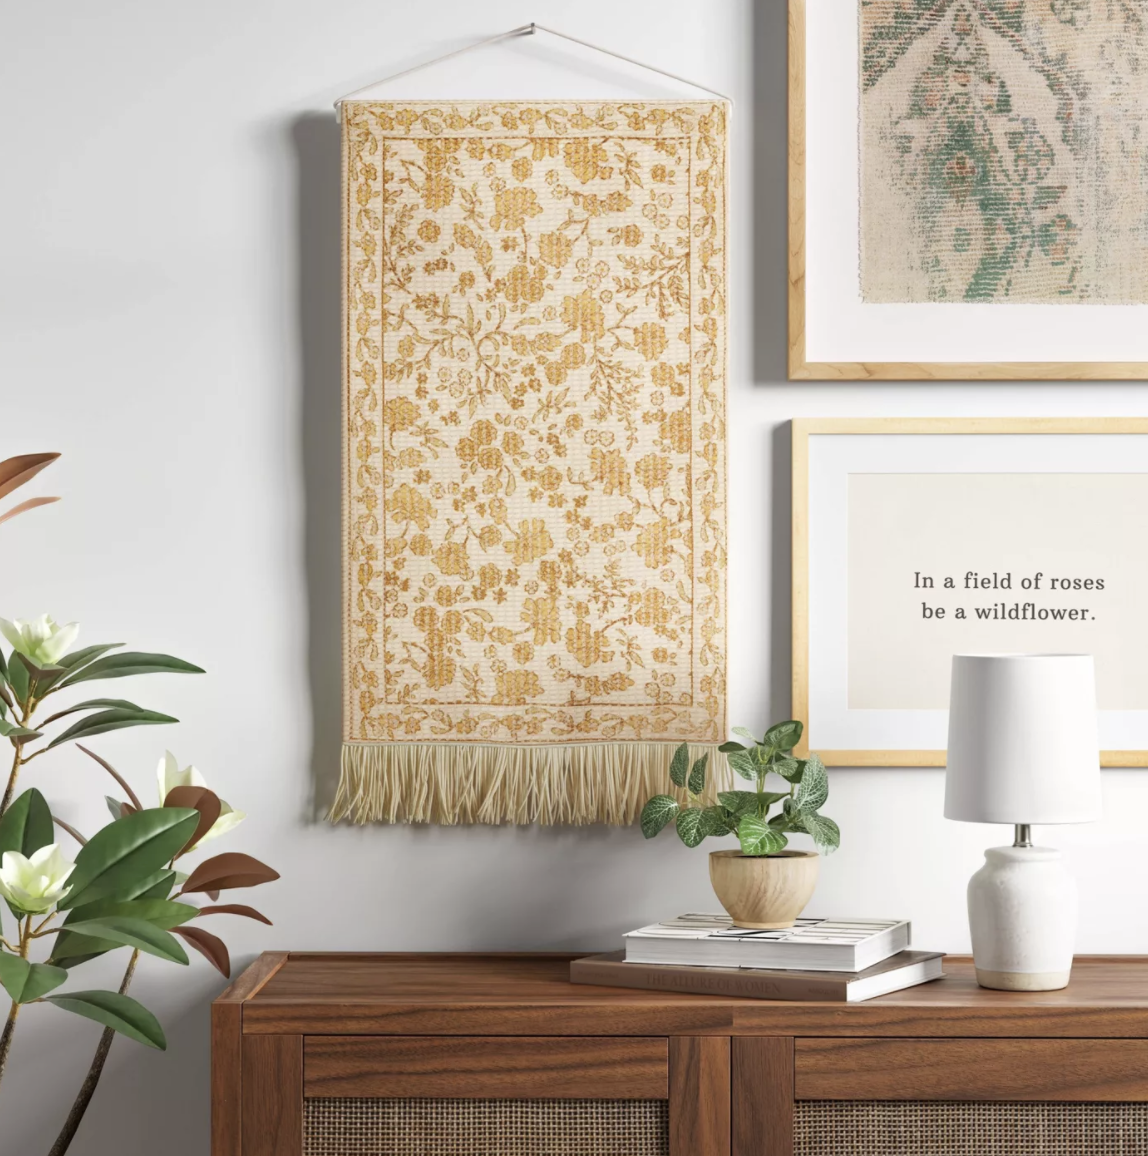 the white and yellow wall hanging